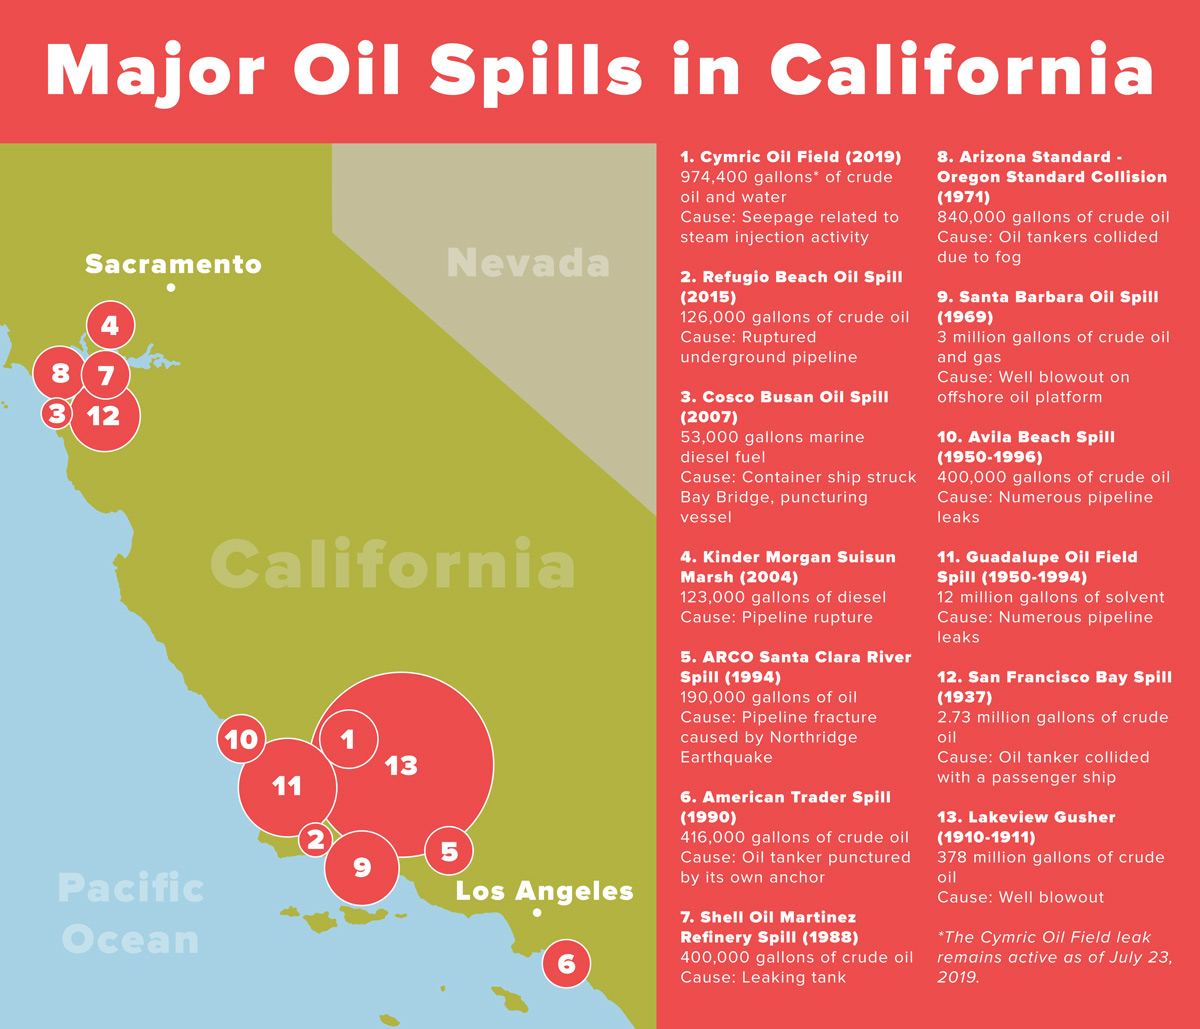 Major Oil Spills in California